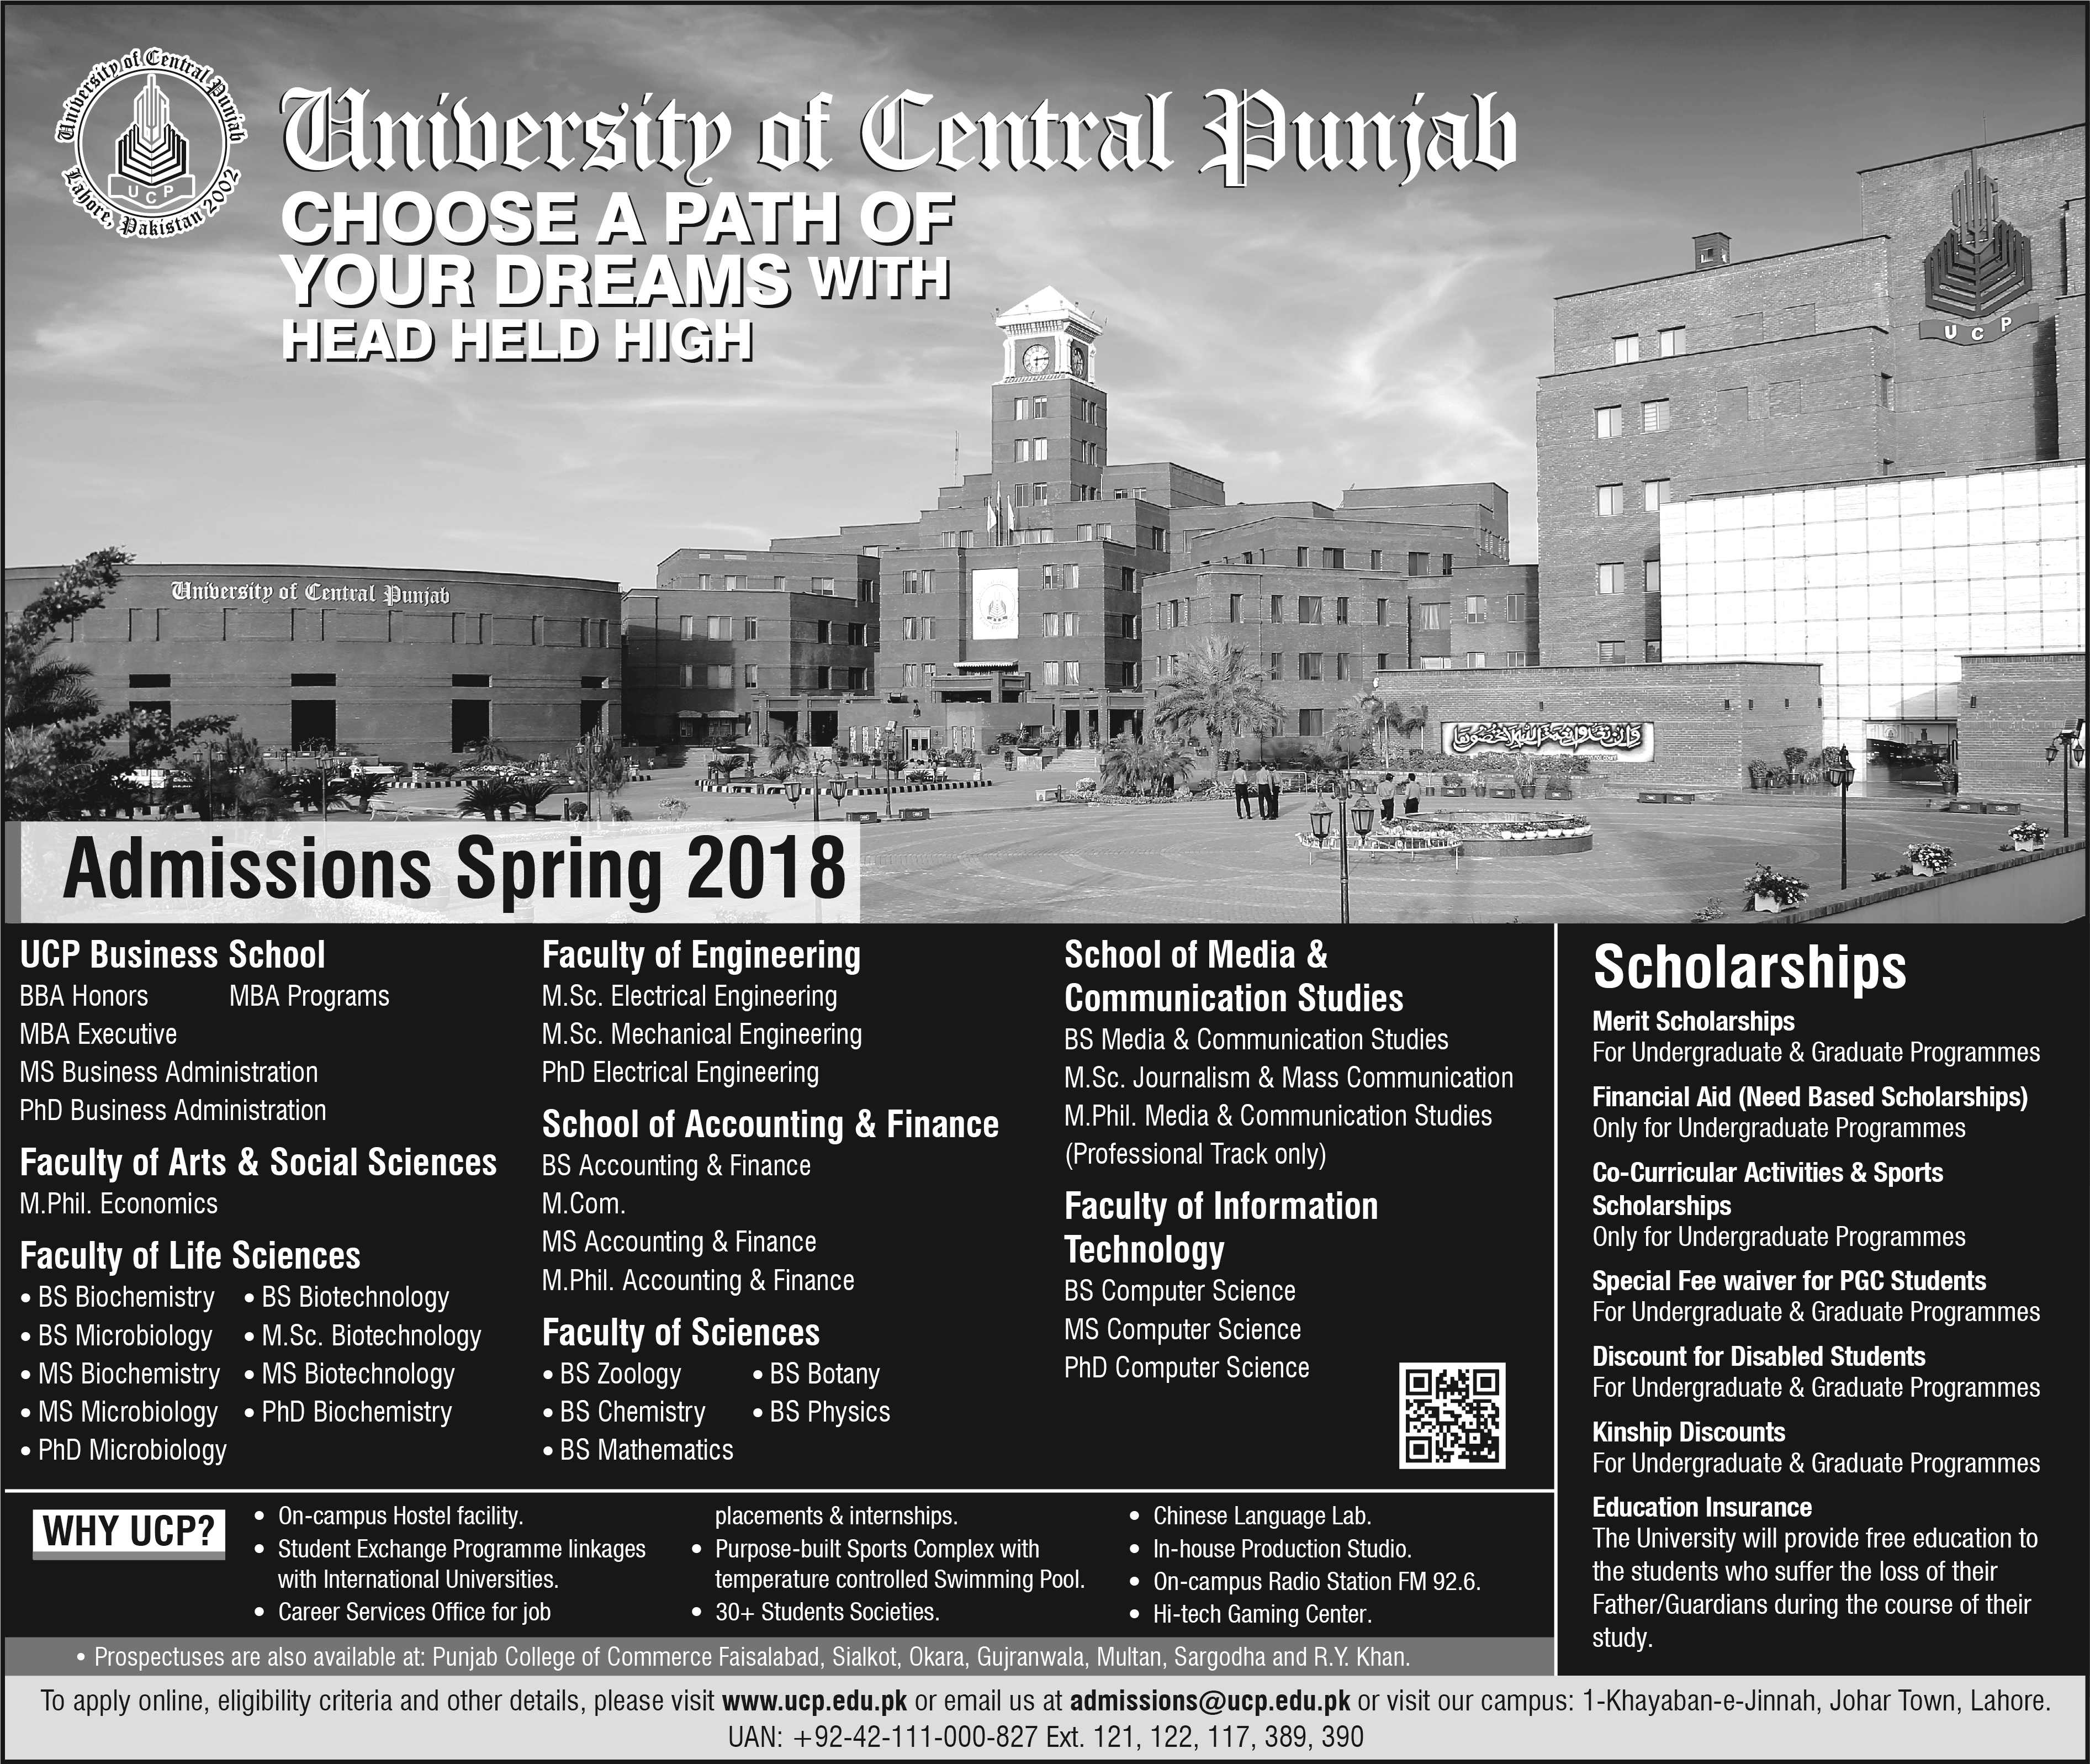 University of Central Punjab (UCP) – Admissions Spring 2018